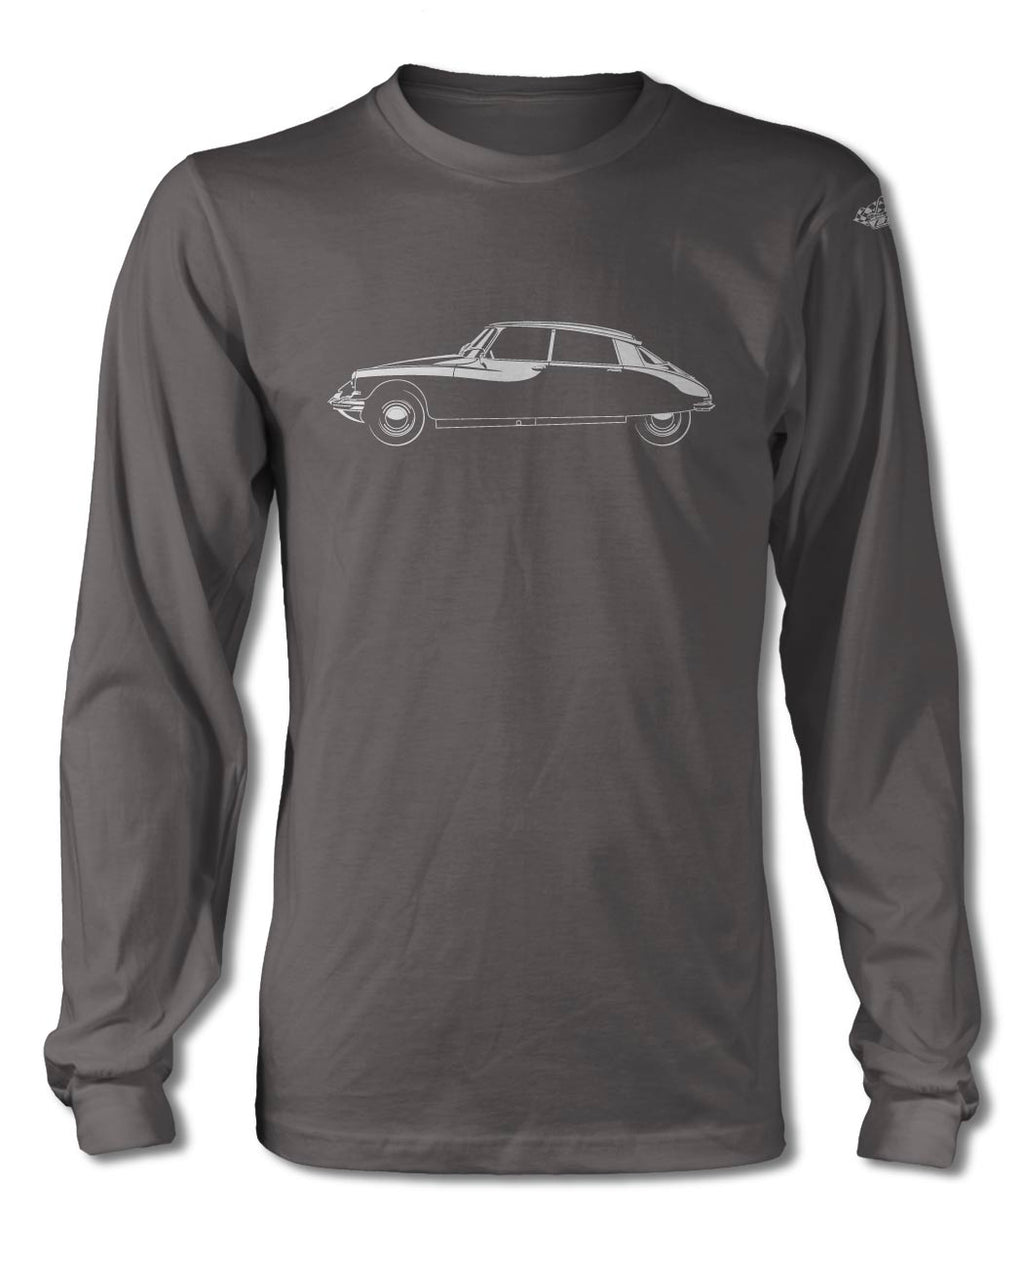 Citroen DS ID 1955 - 1967 Sedan 4 doors T-Shirt - Long Sleeves - Side View